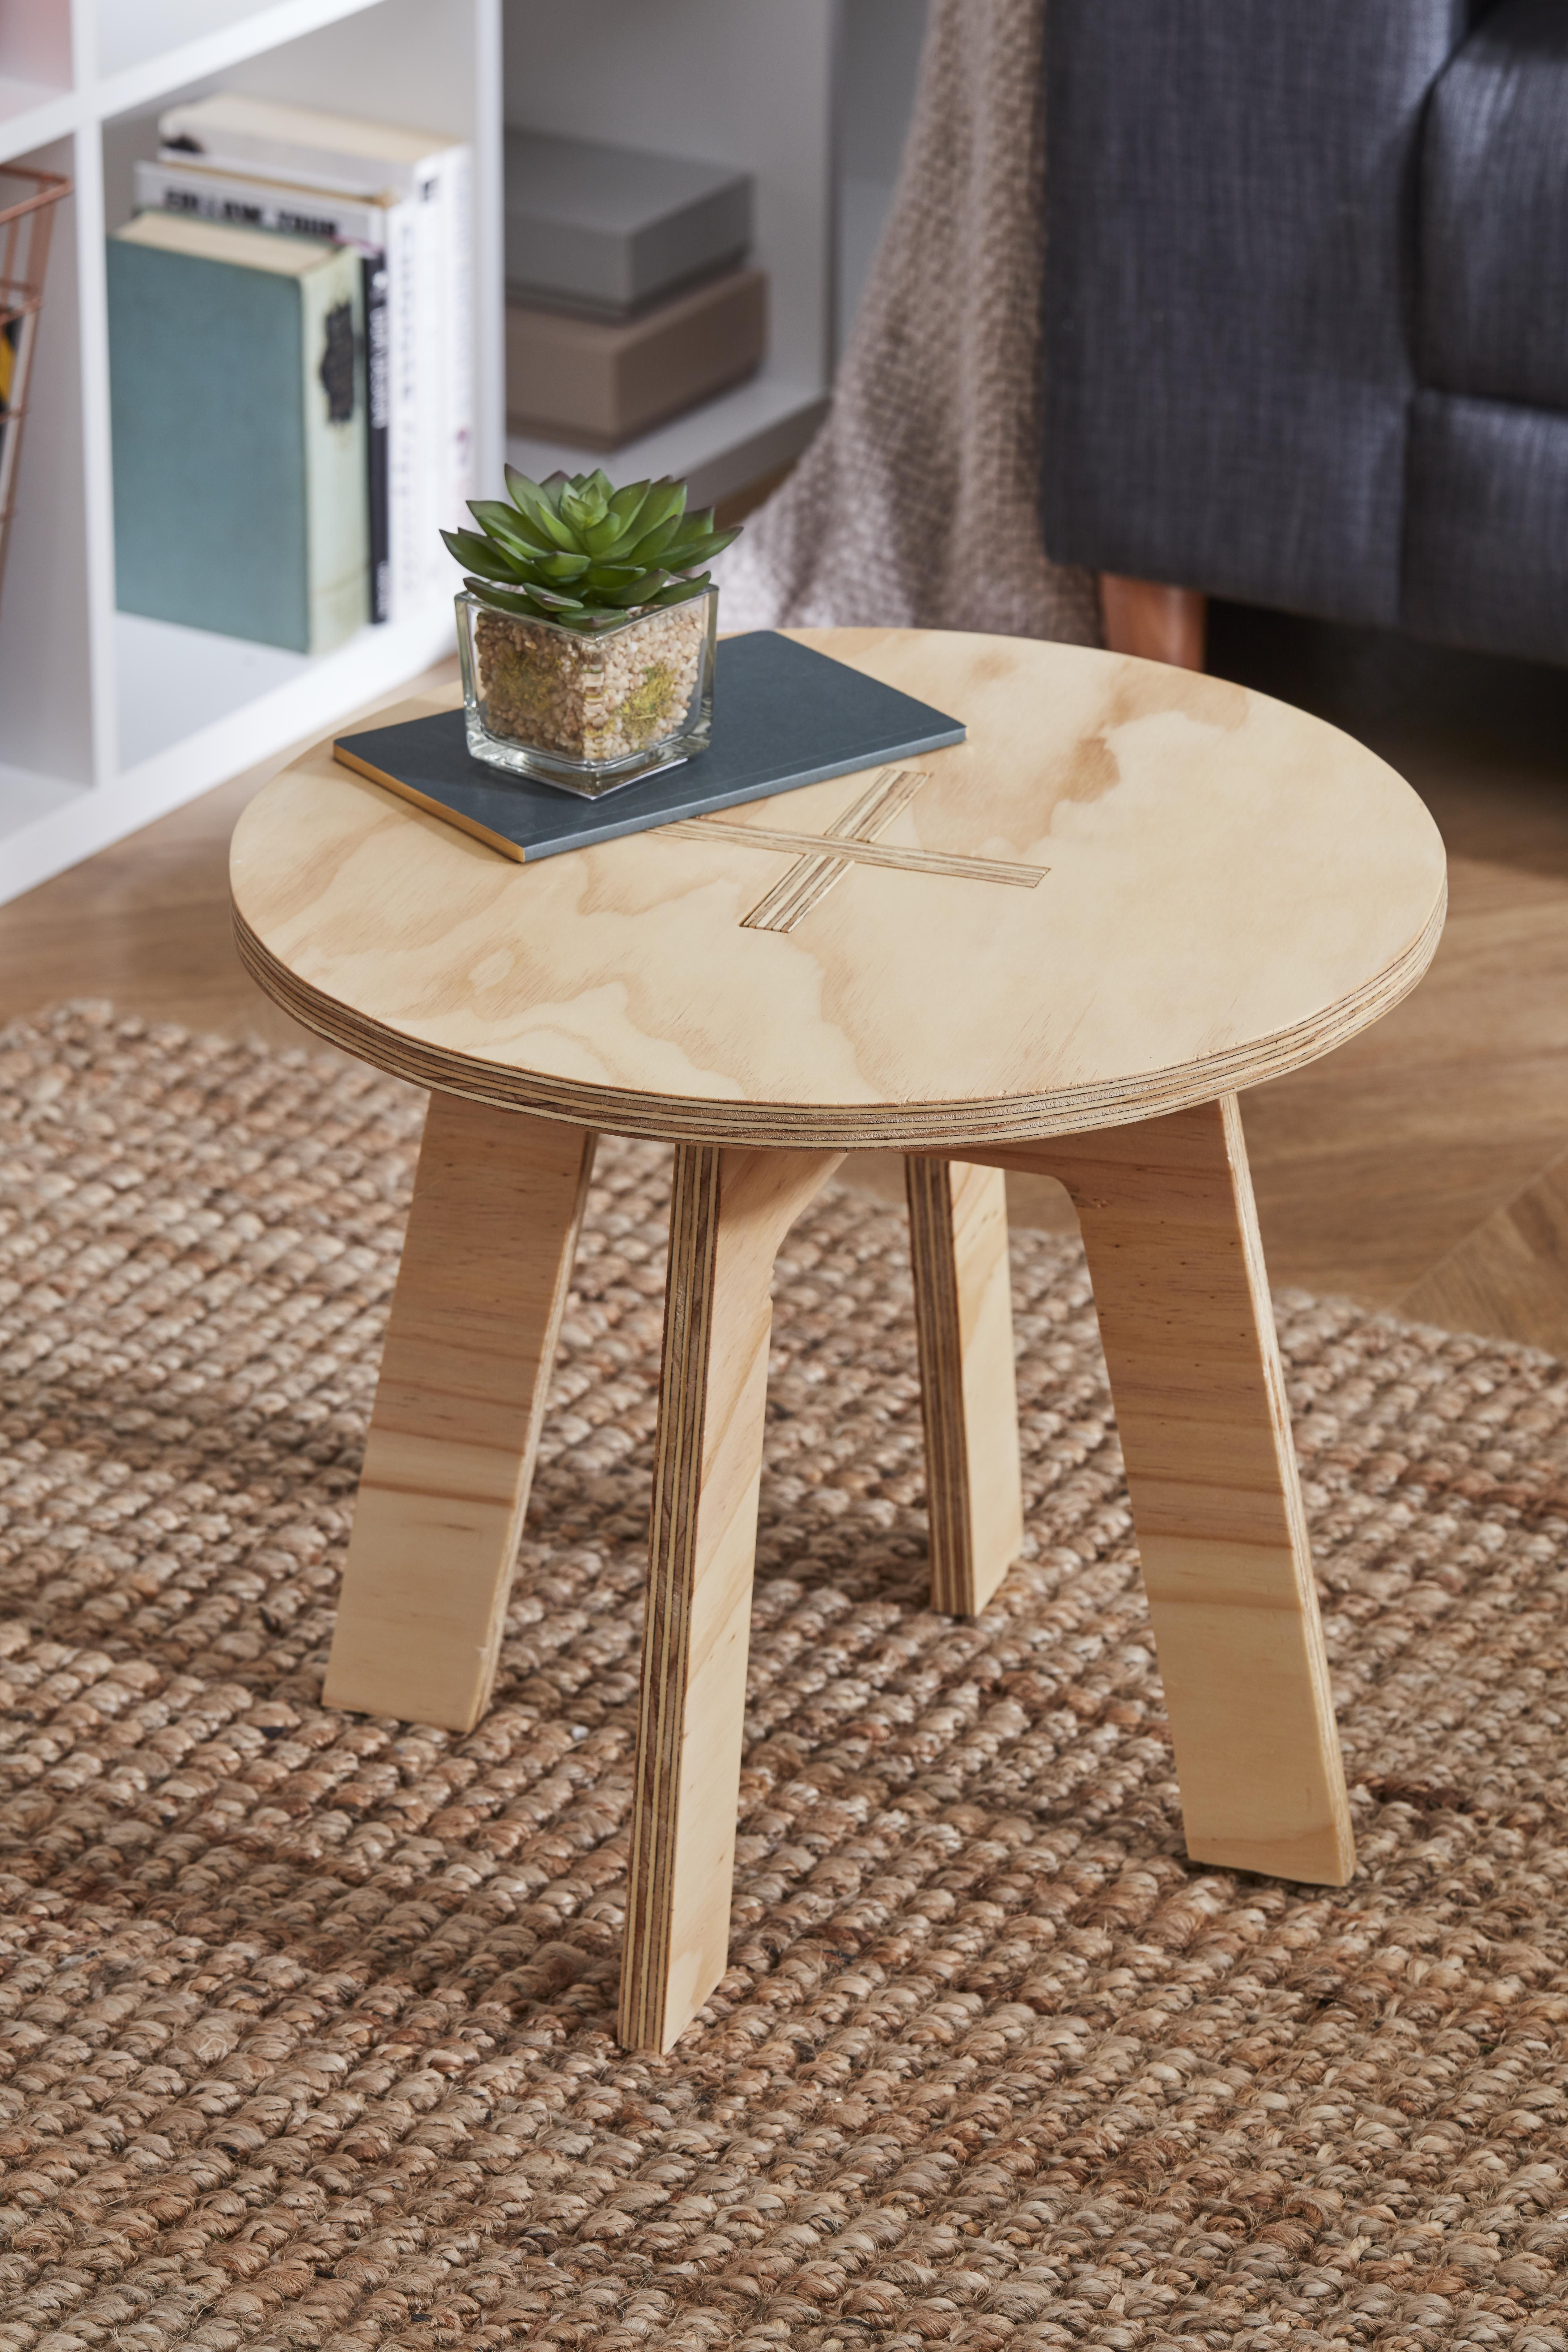 Create your very own plywood table for your home. Ideal ...